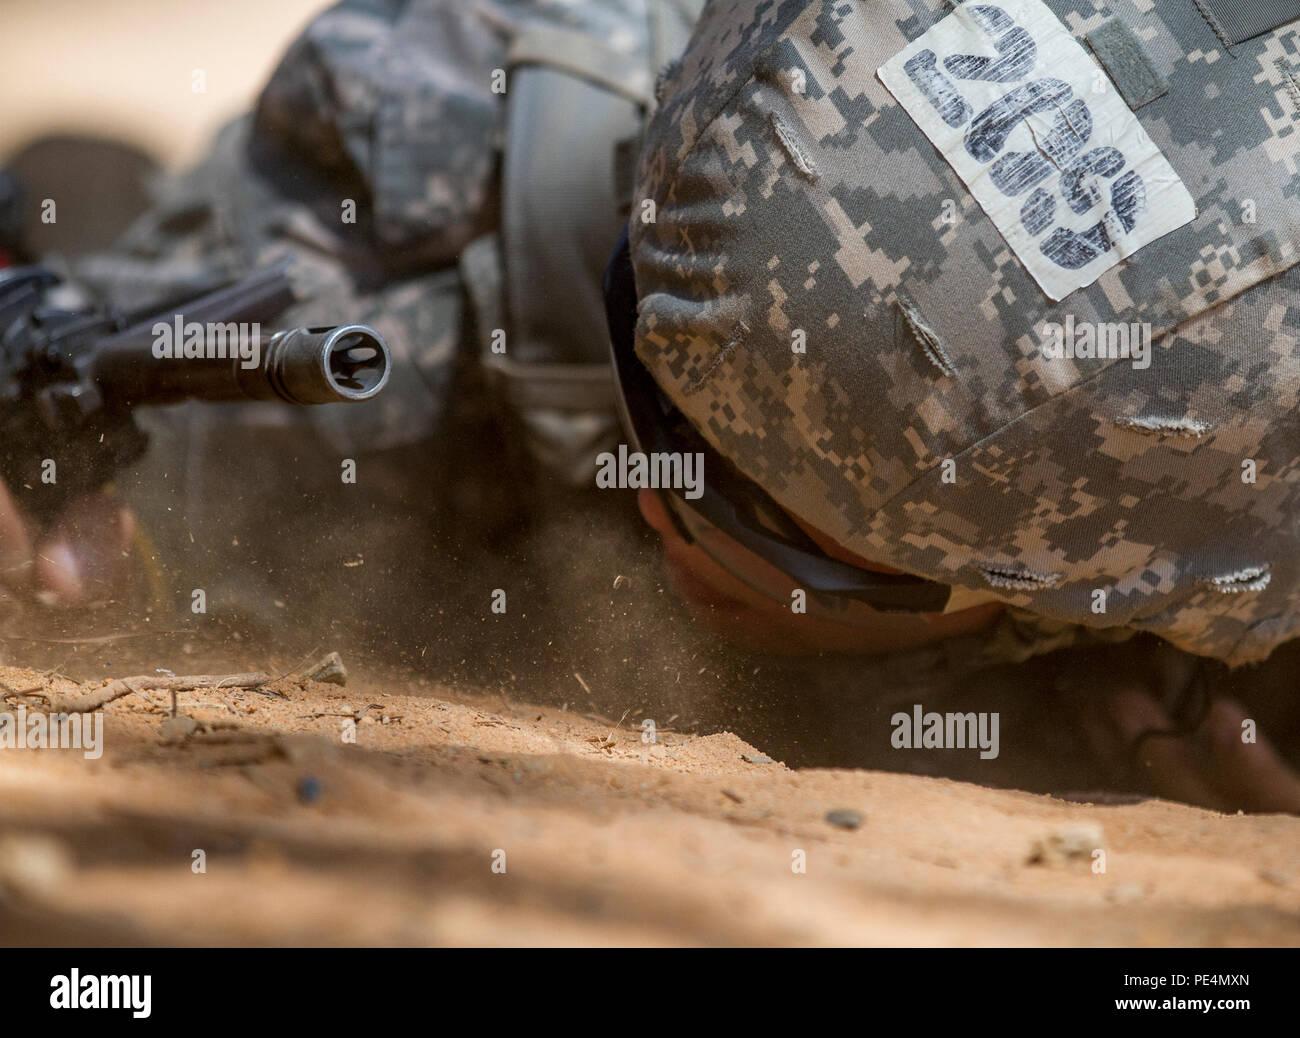 A U.S. Army Soldier low crawls through an obstacle on a buddy team live fire lane during the seventh week of basic training at Fort Jackson, S.C., Sept. 19, 2015. (U.S. Army photo by Sgt. Ken Scar) - Stock Image